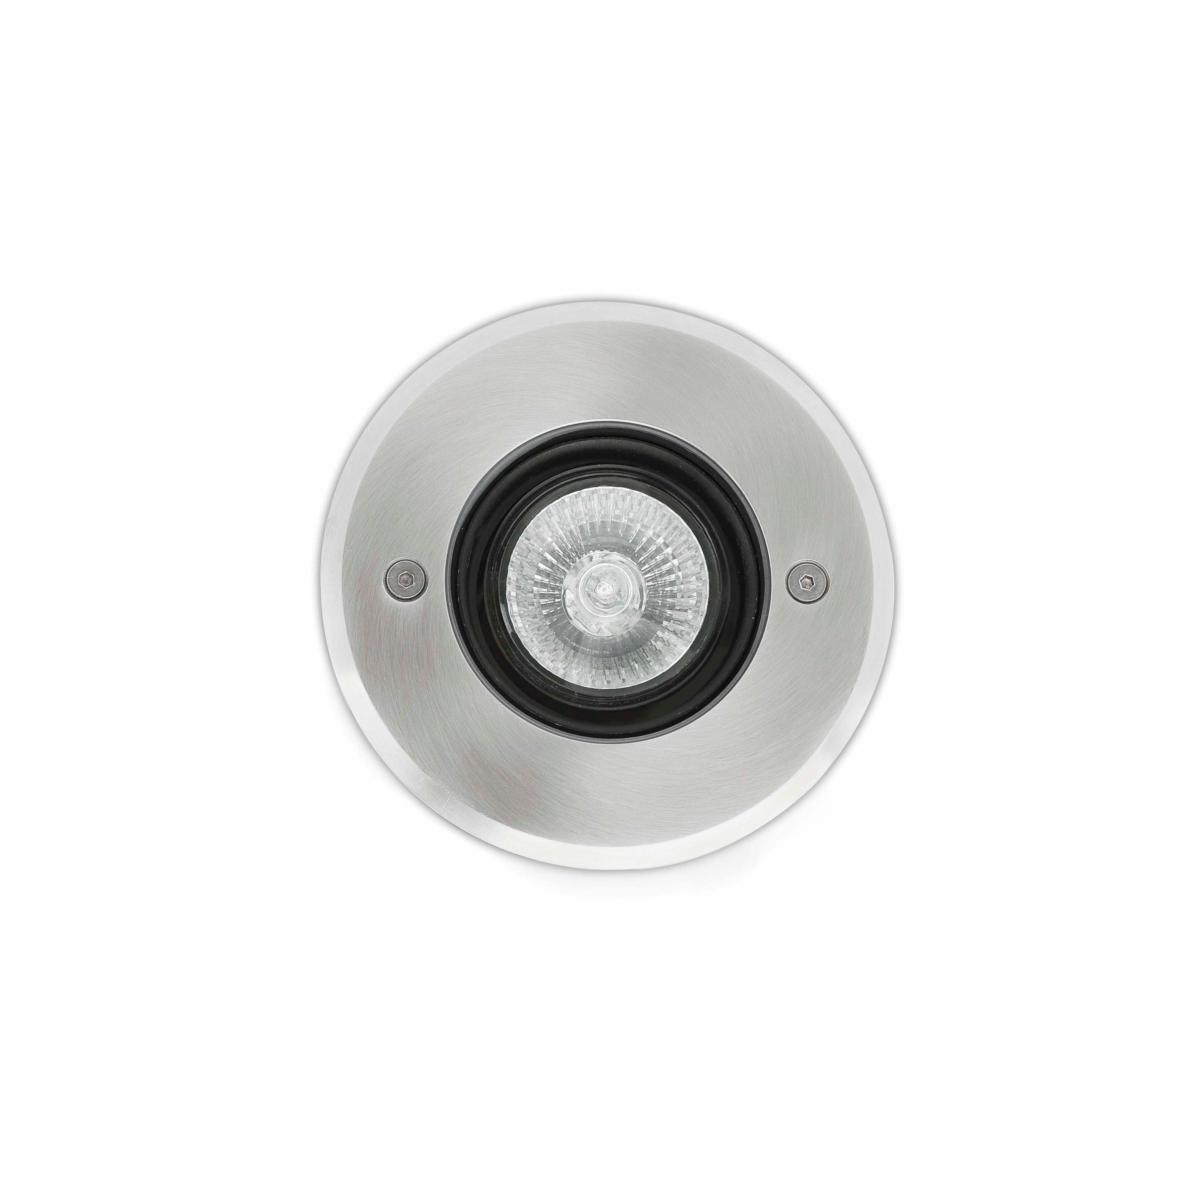 Eclairage 12v Led Spot Encastrable Exterieur Ip67 Gu10 Inox 316 Faro